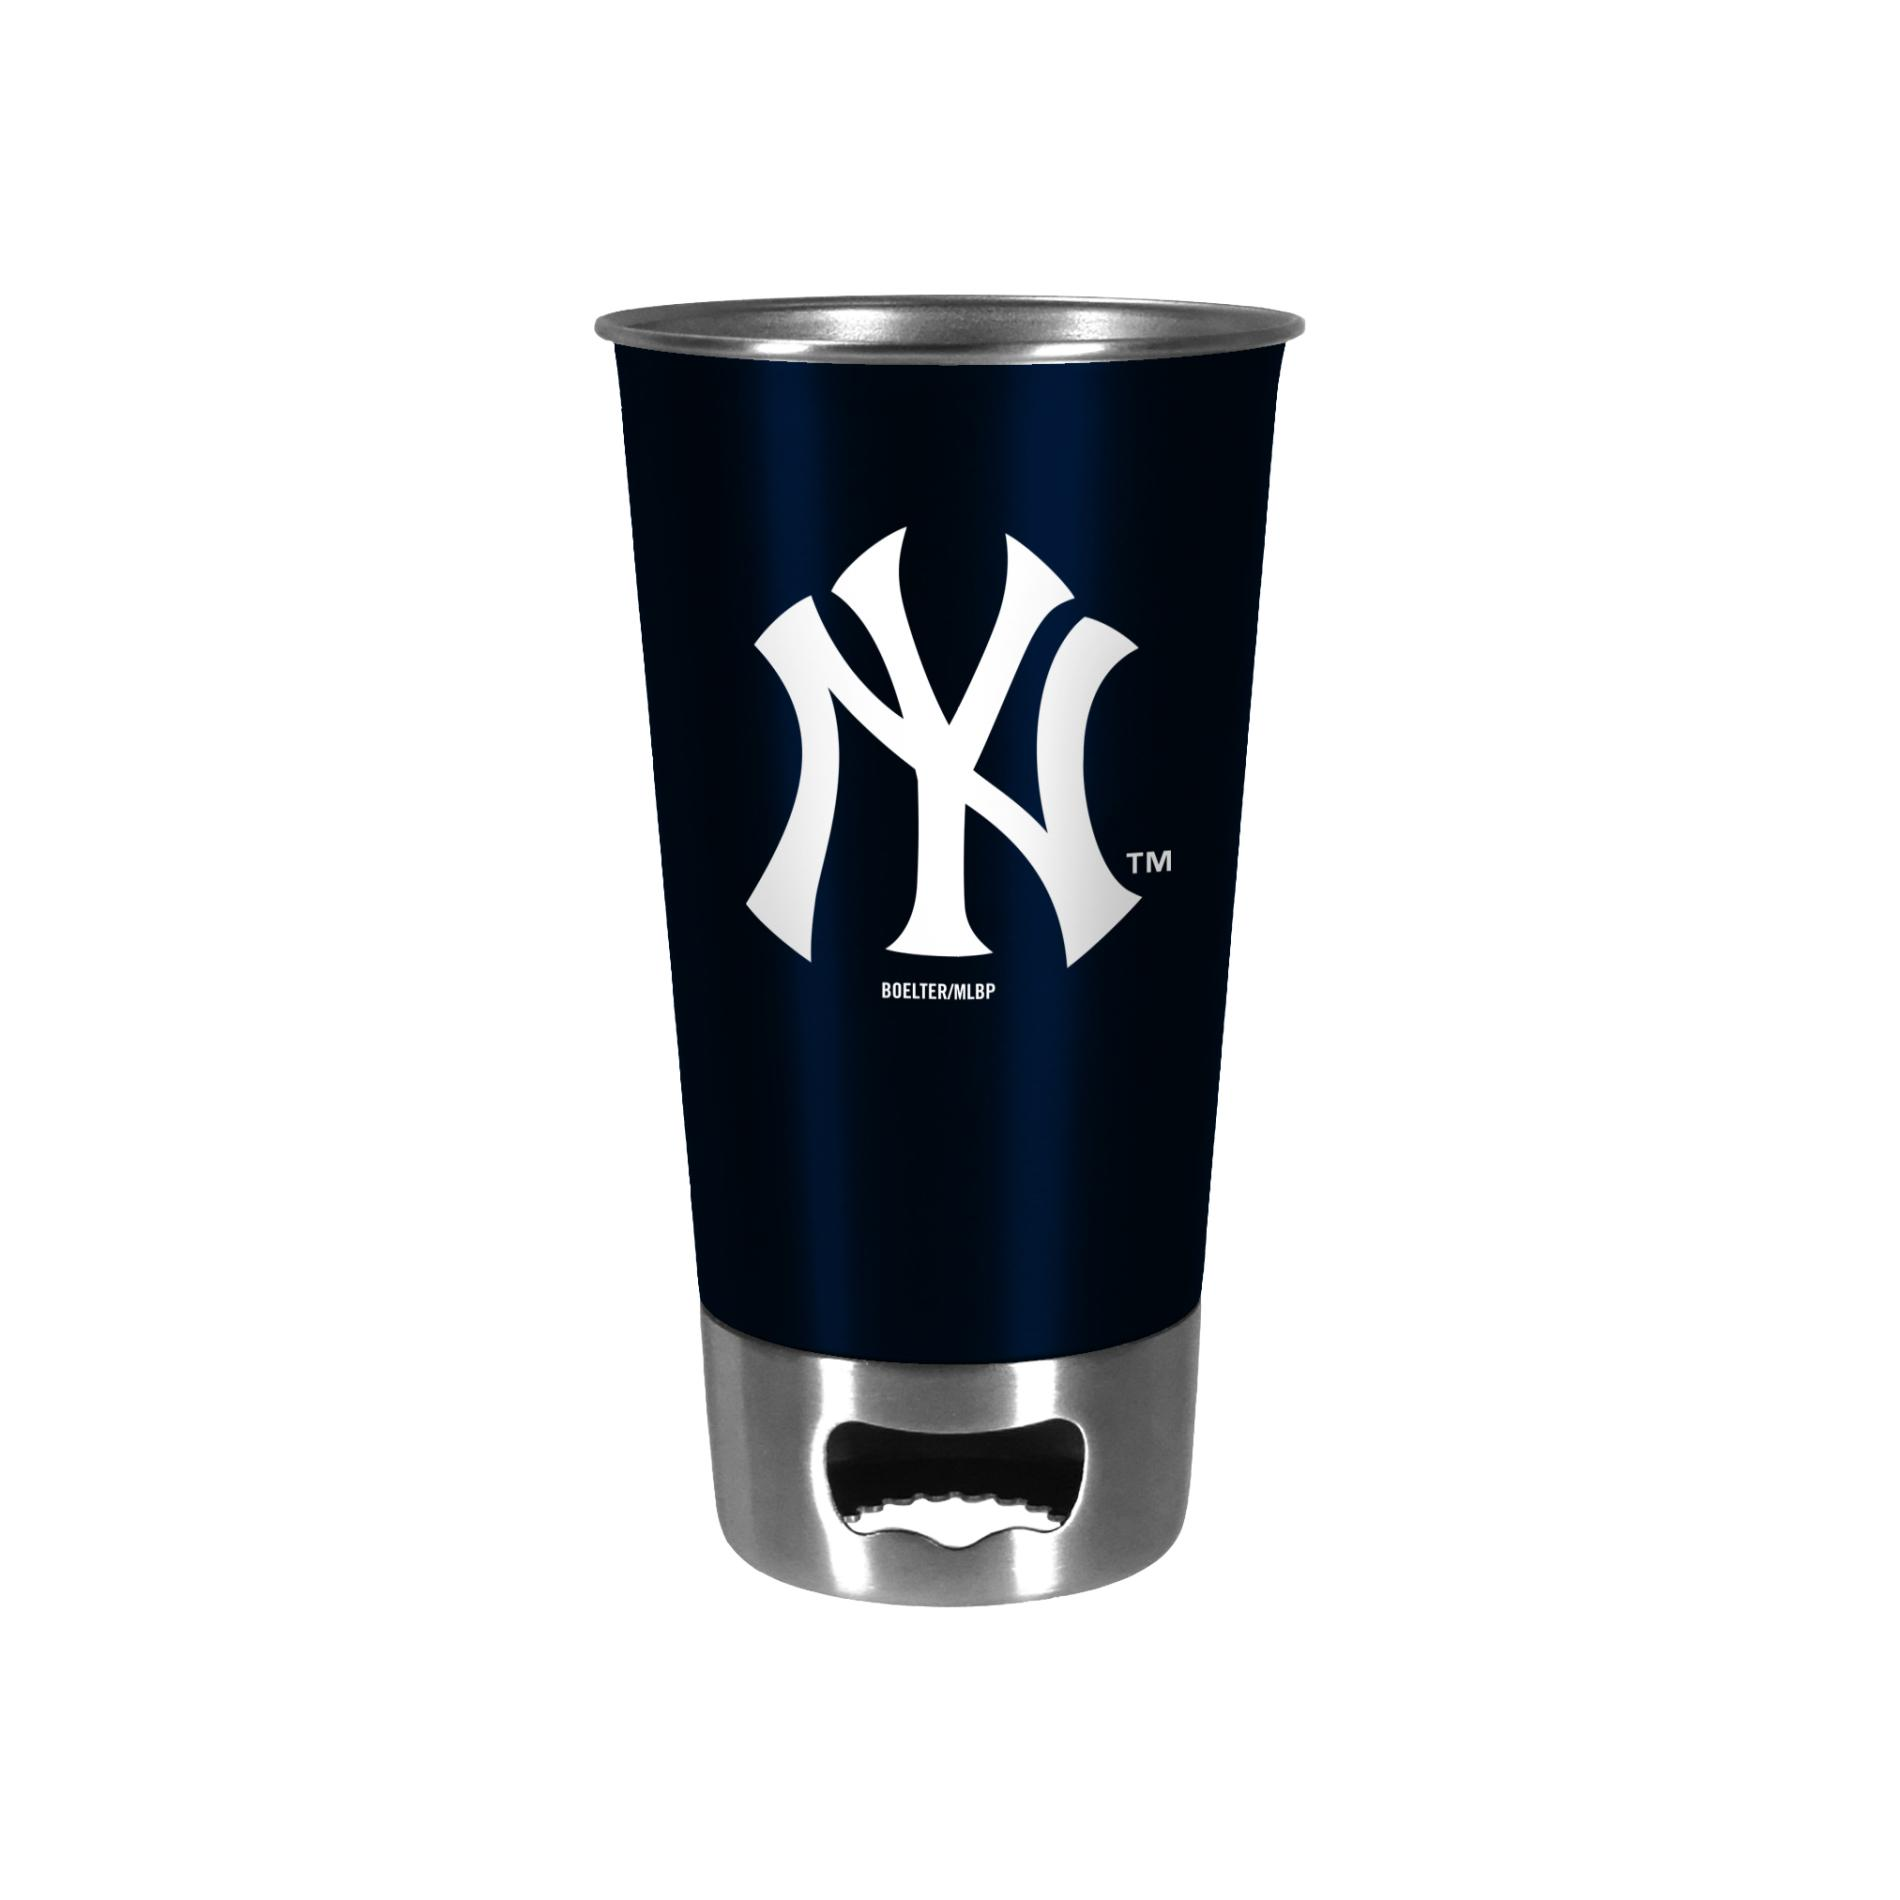 MLB Bottle Opener Metal Cup - New York Yankees PartNumber: 046W001252054001P KsnValue: 1252054 MfgPartNumber: 380307